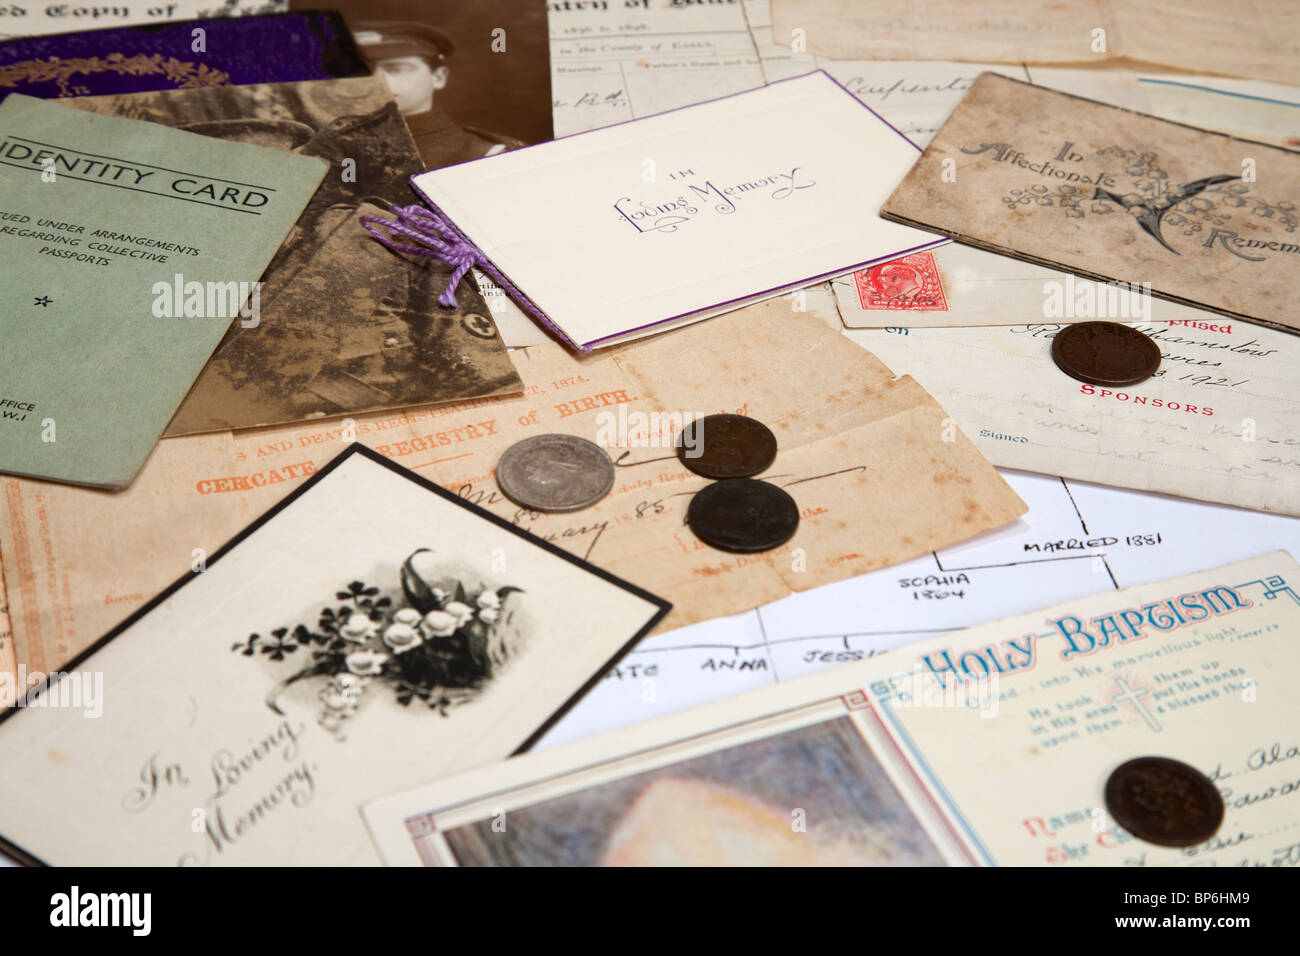 A collection of family documents and photographs being used to research the family tree - Stock Image